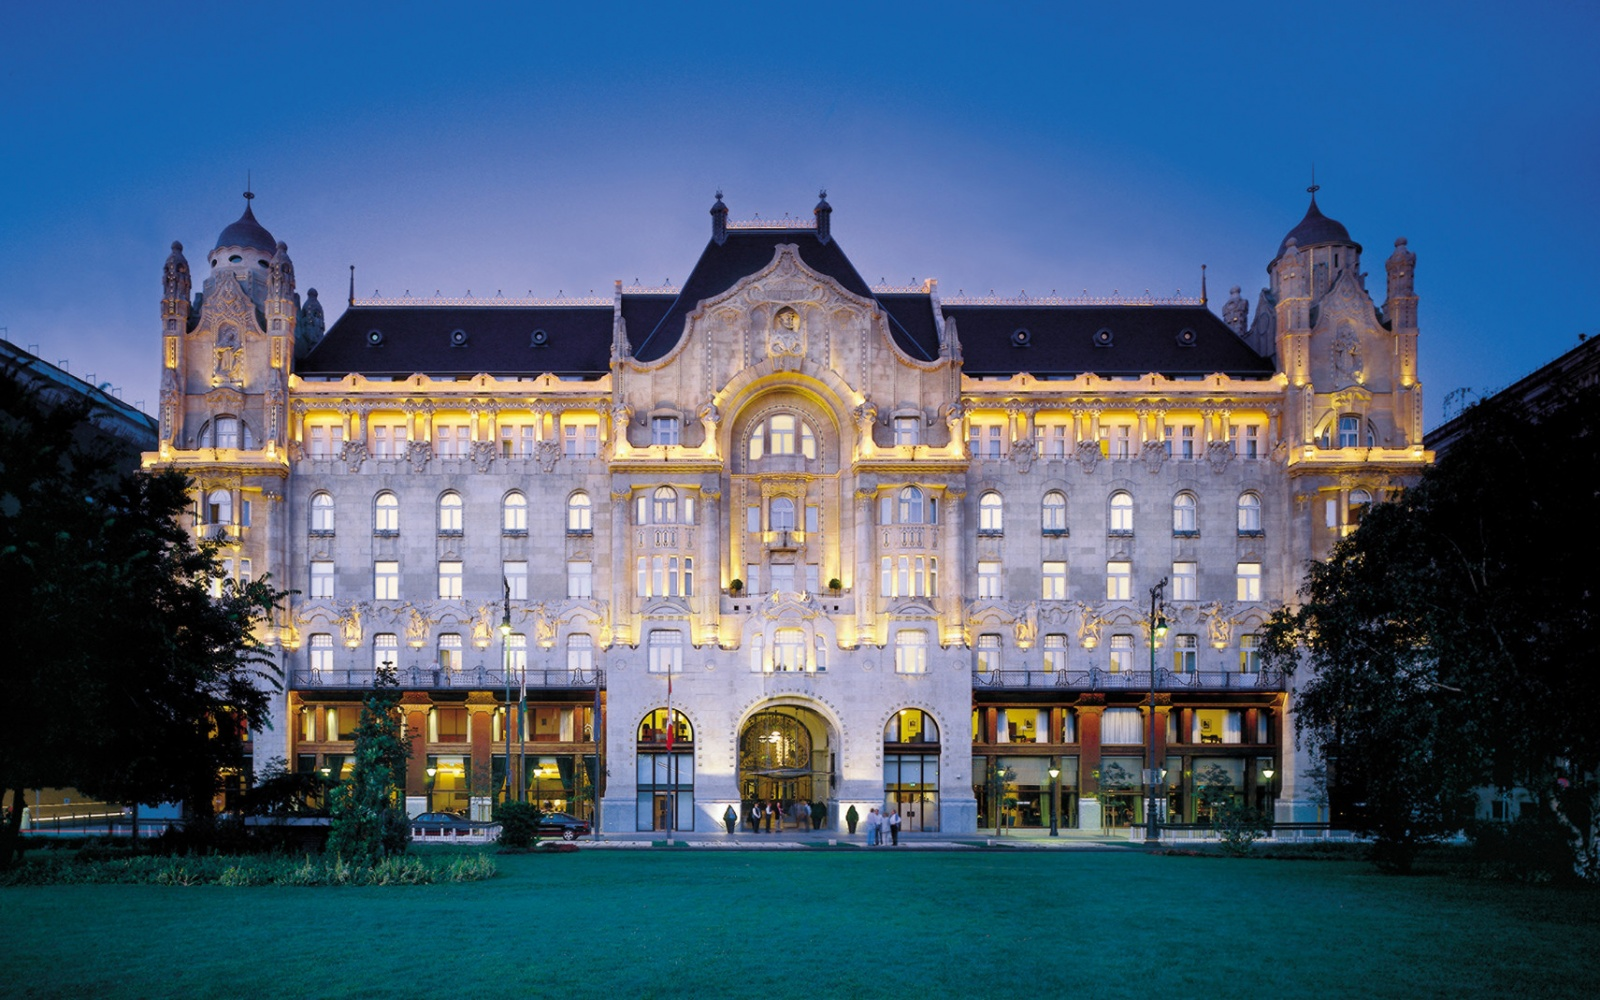 No. 3 Four Seasons Hotel Gresham Palace Budapest